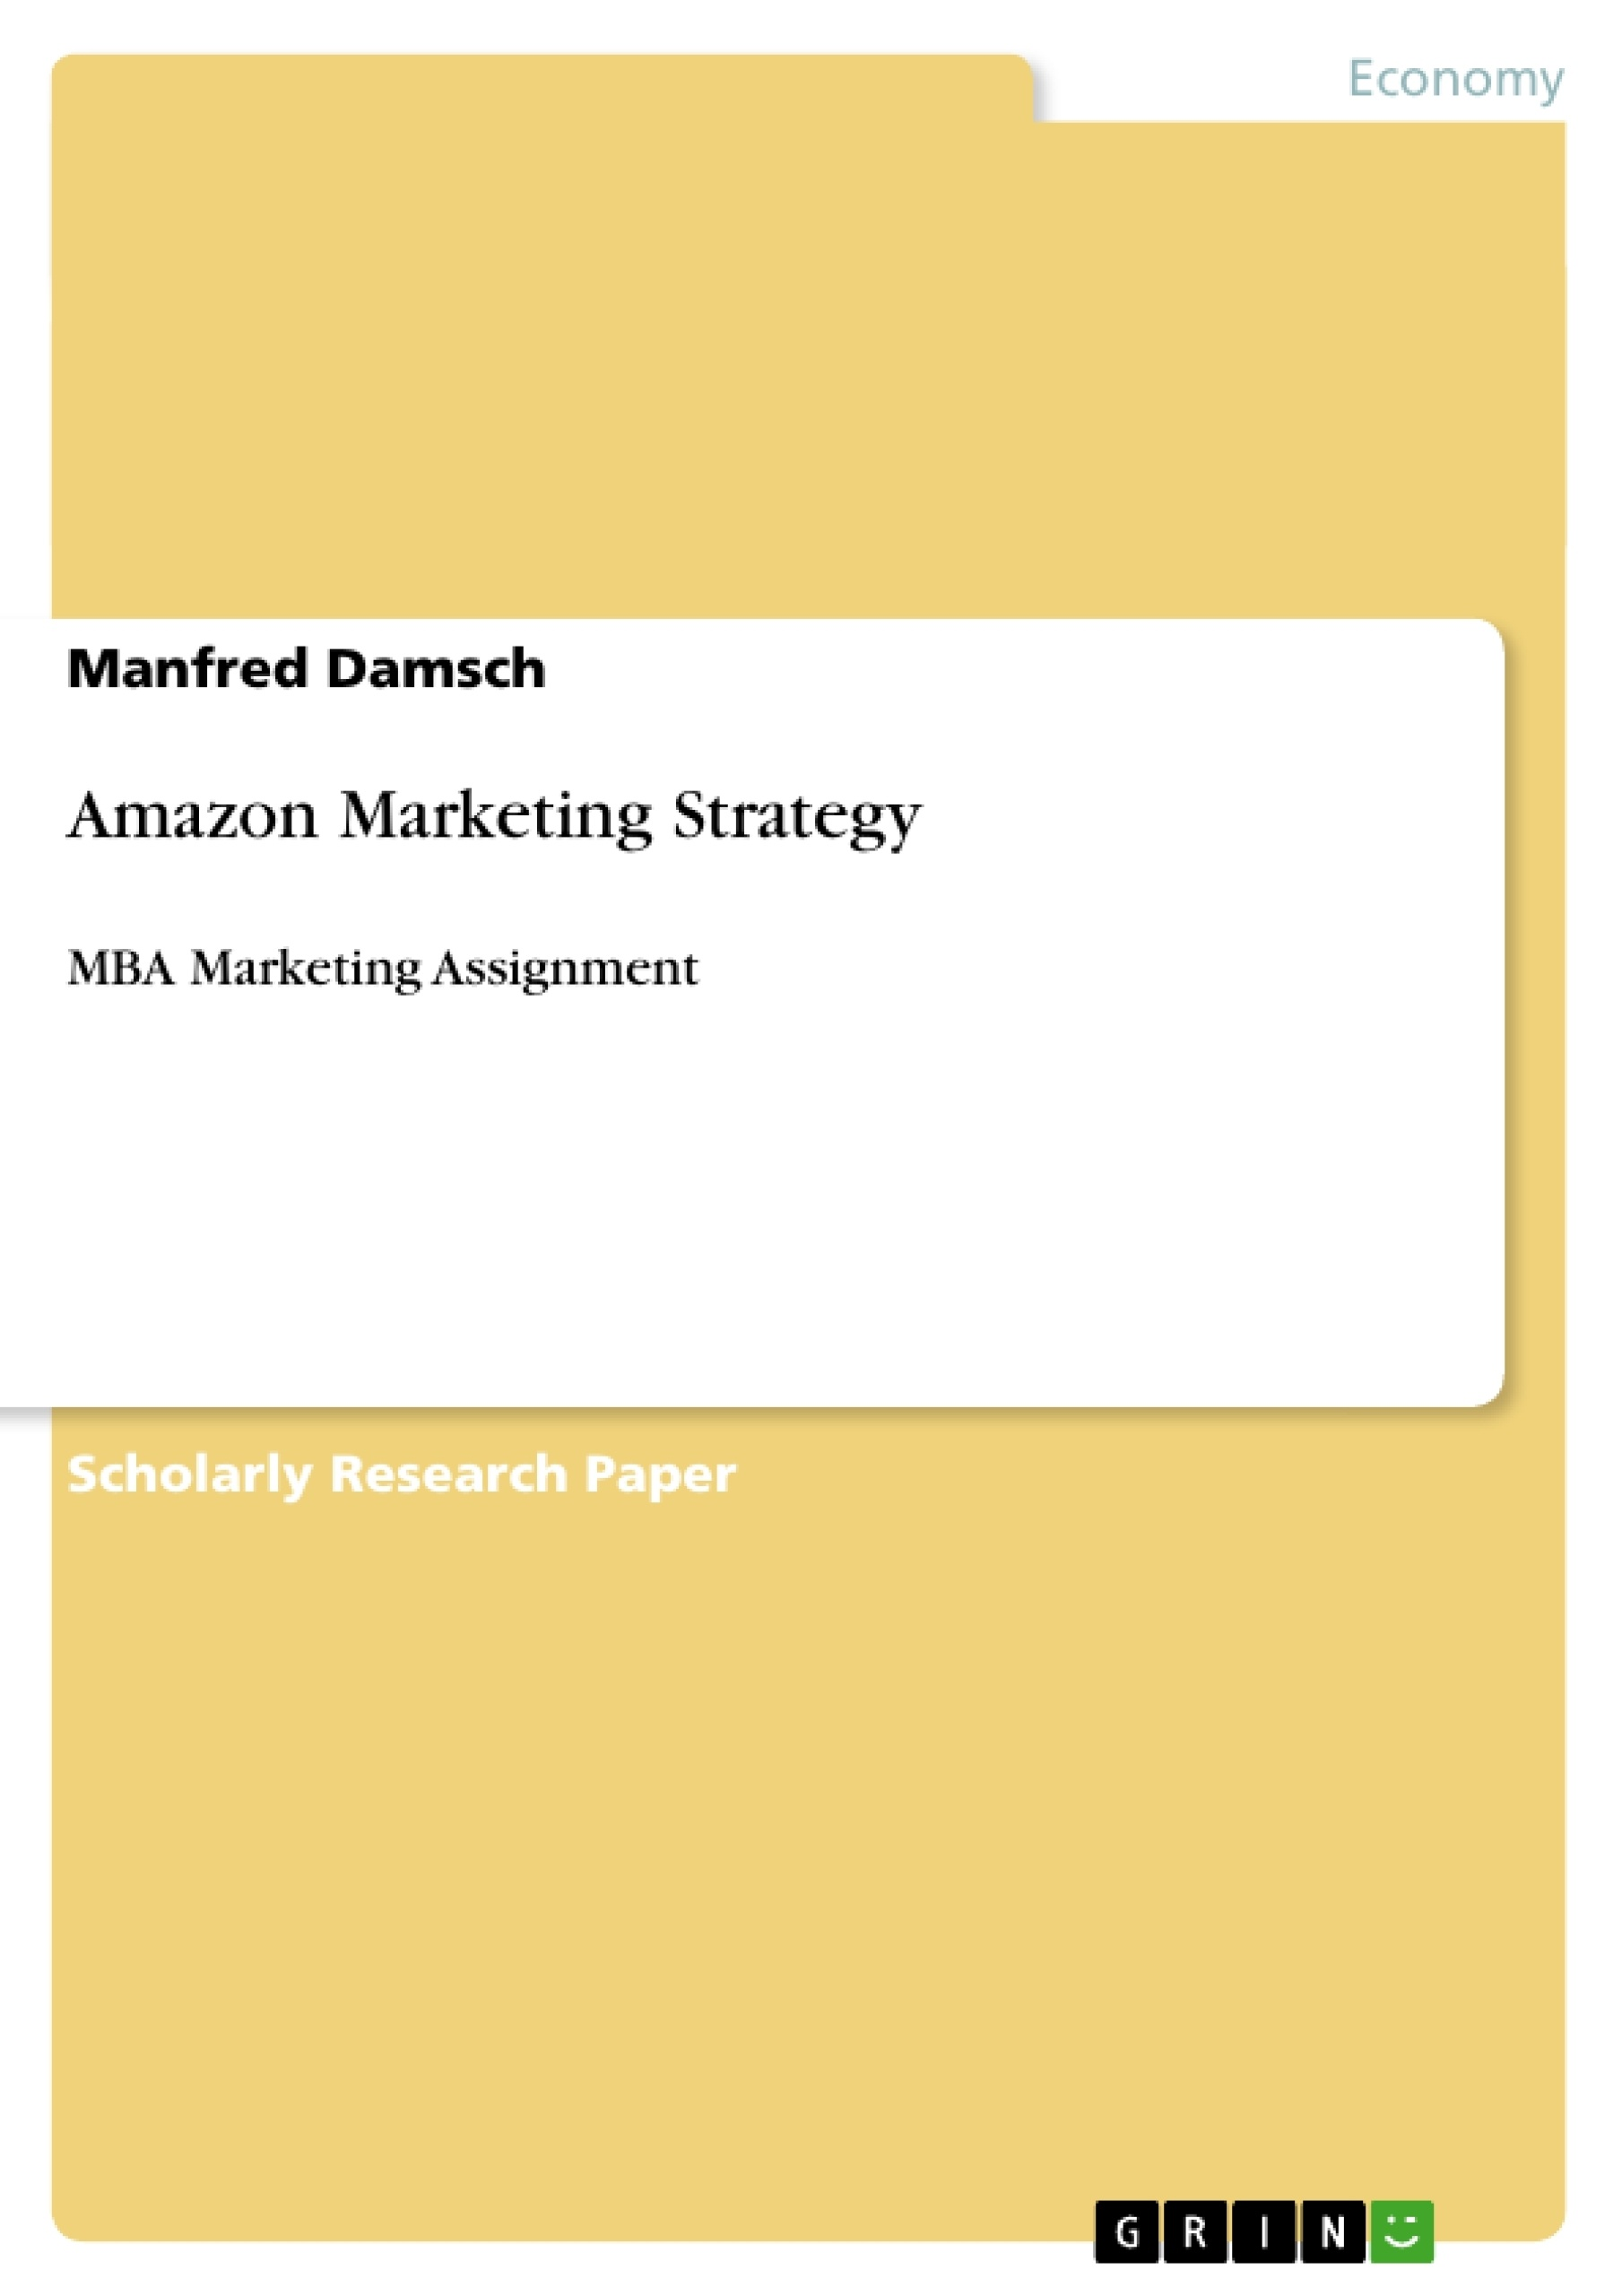 Papers on marketing